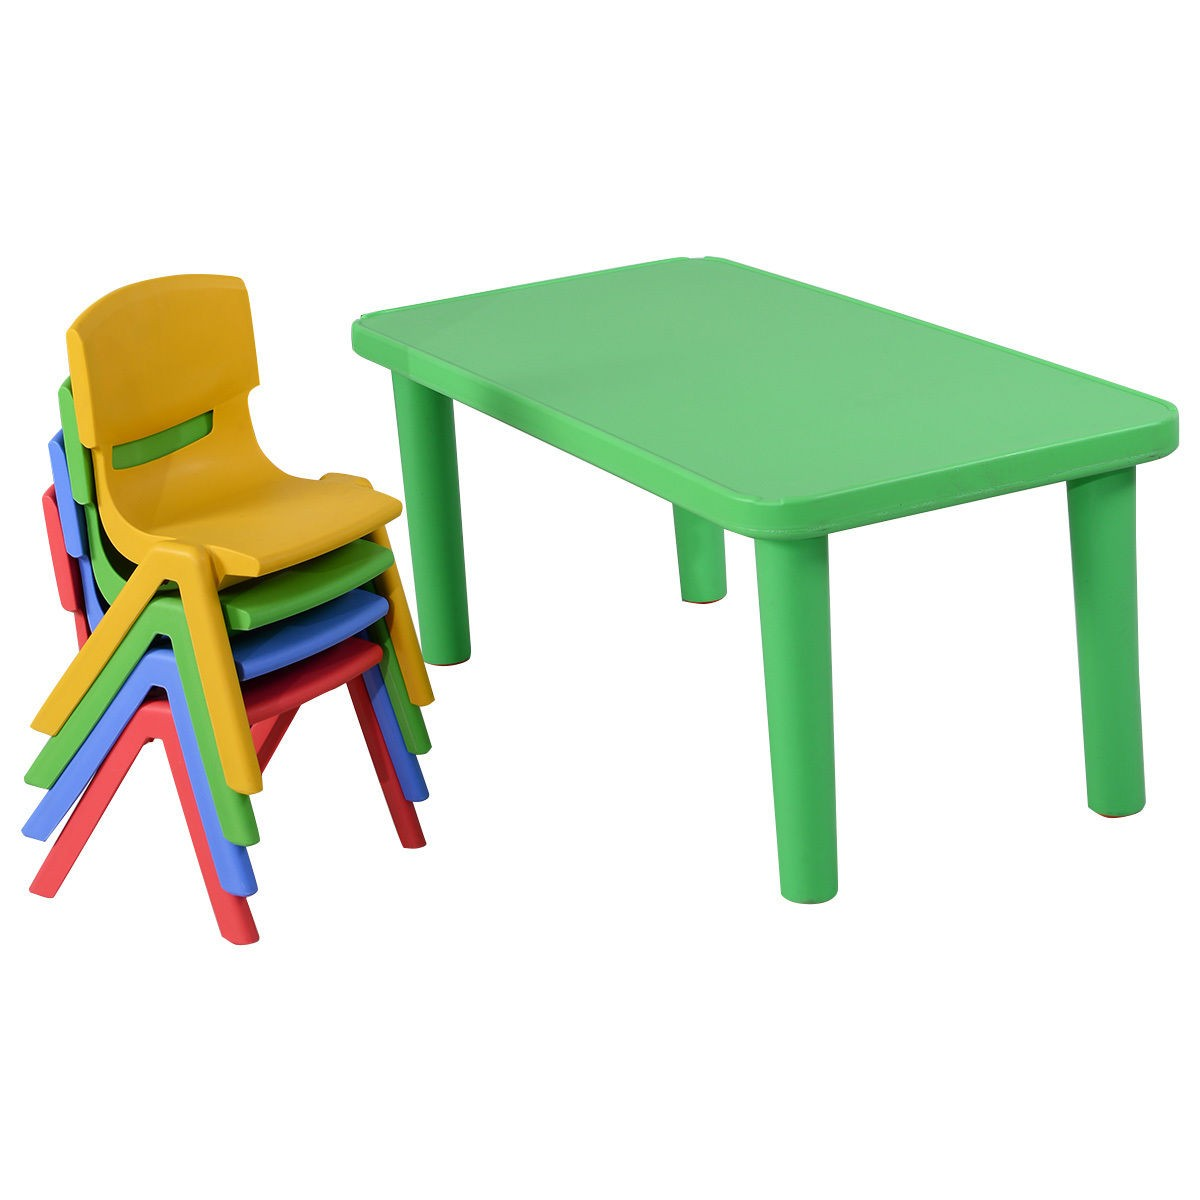 Plastic Table And Chairs For Kids Fun Kids Plastic Table And 4 Chairs Set Colorful Play